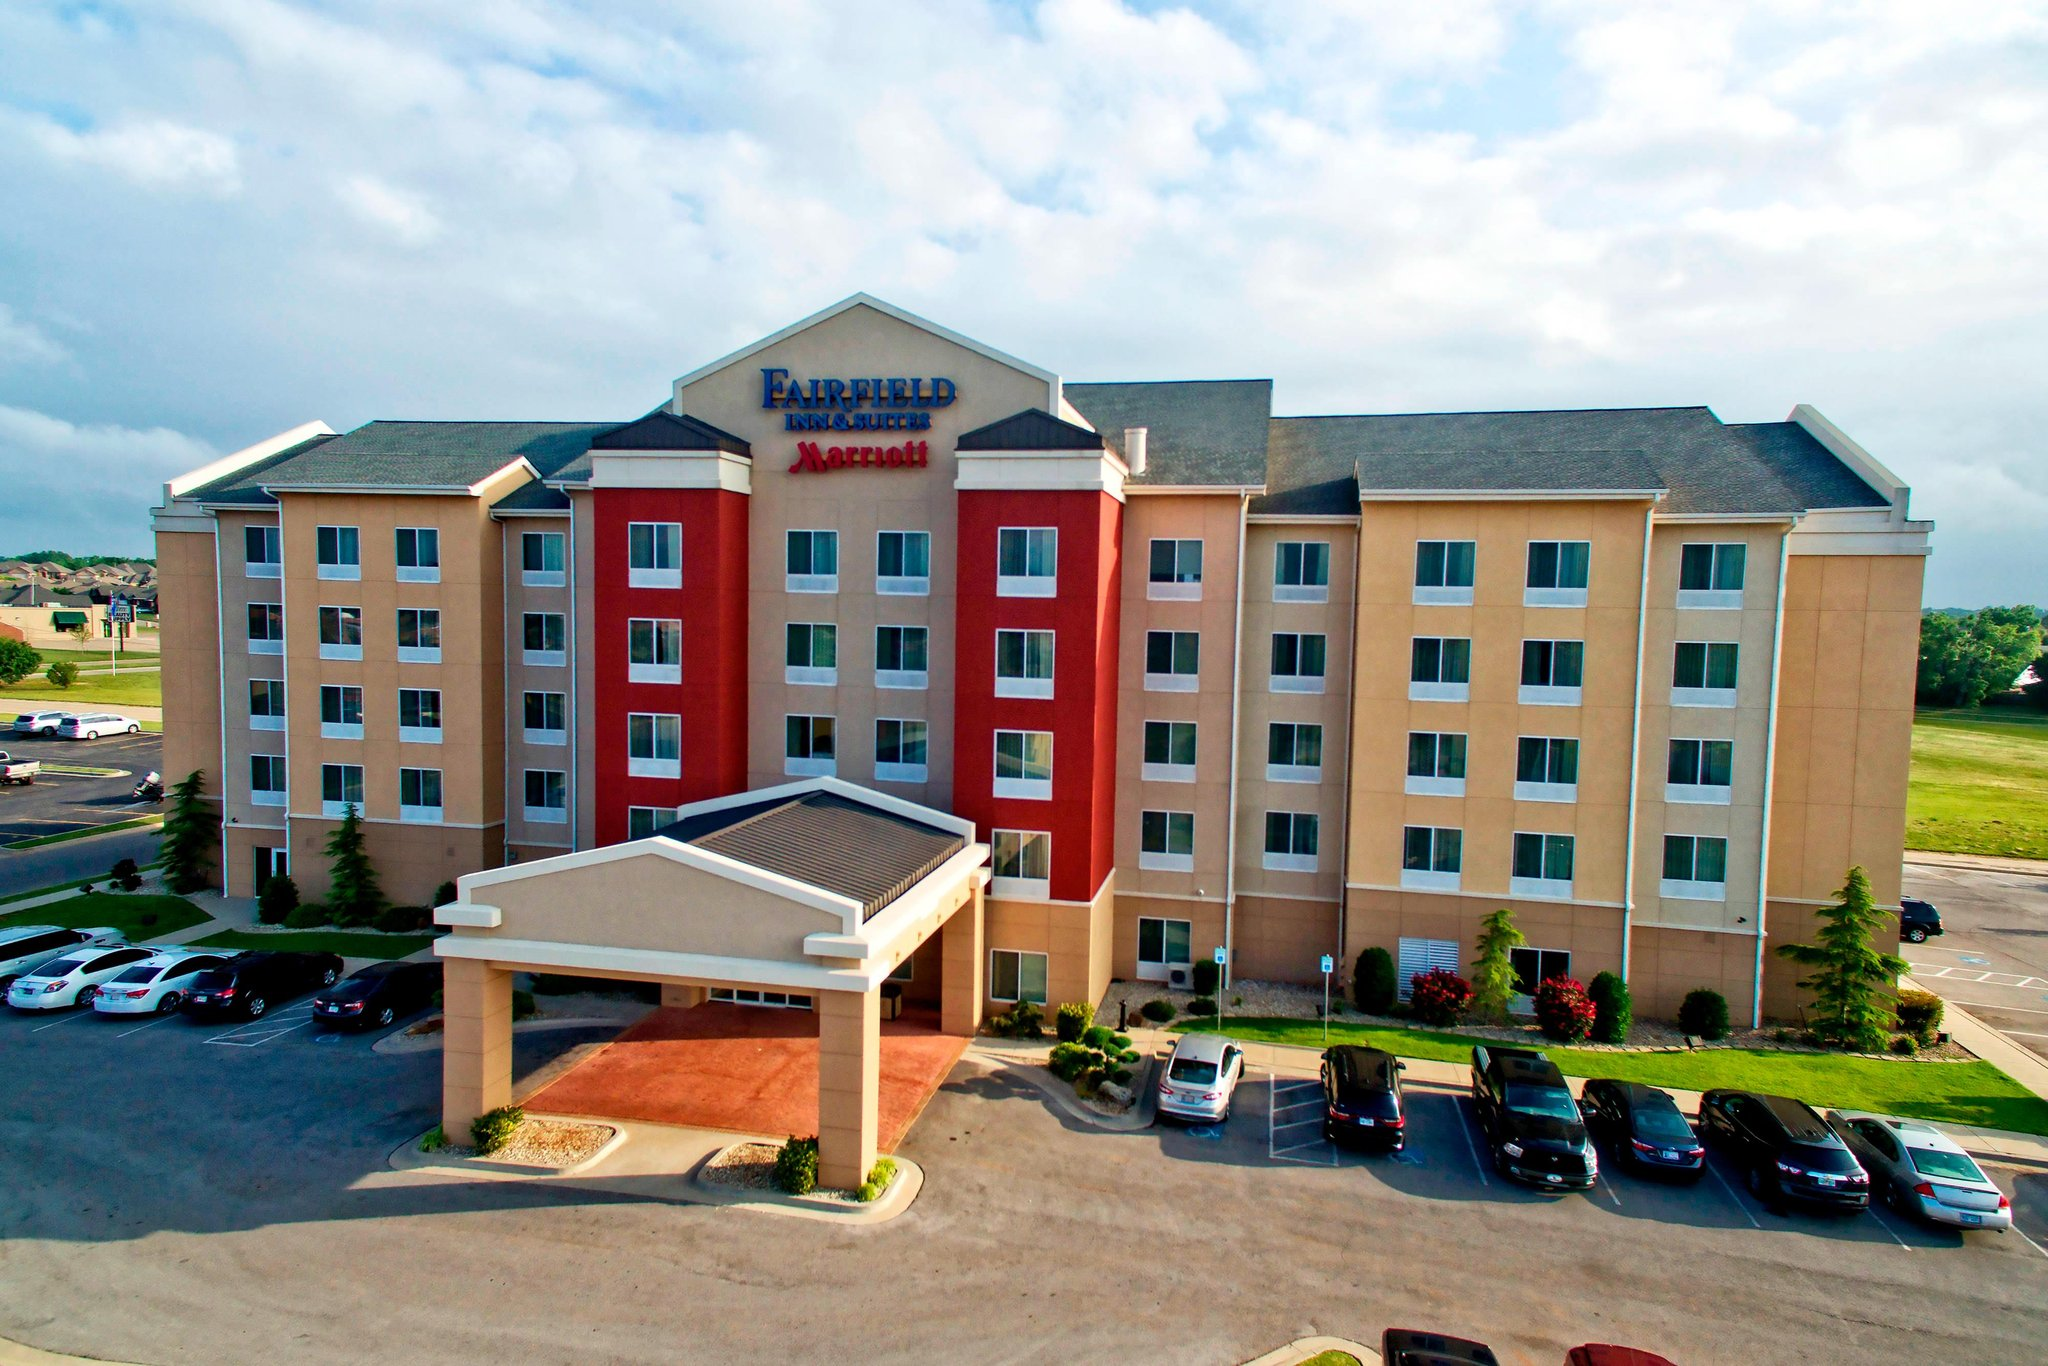 Fairfield Inn and Suites by Marriott Oklahoma City NW Expressway/Warr Acres